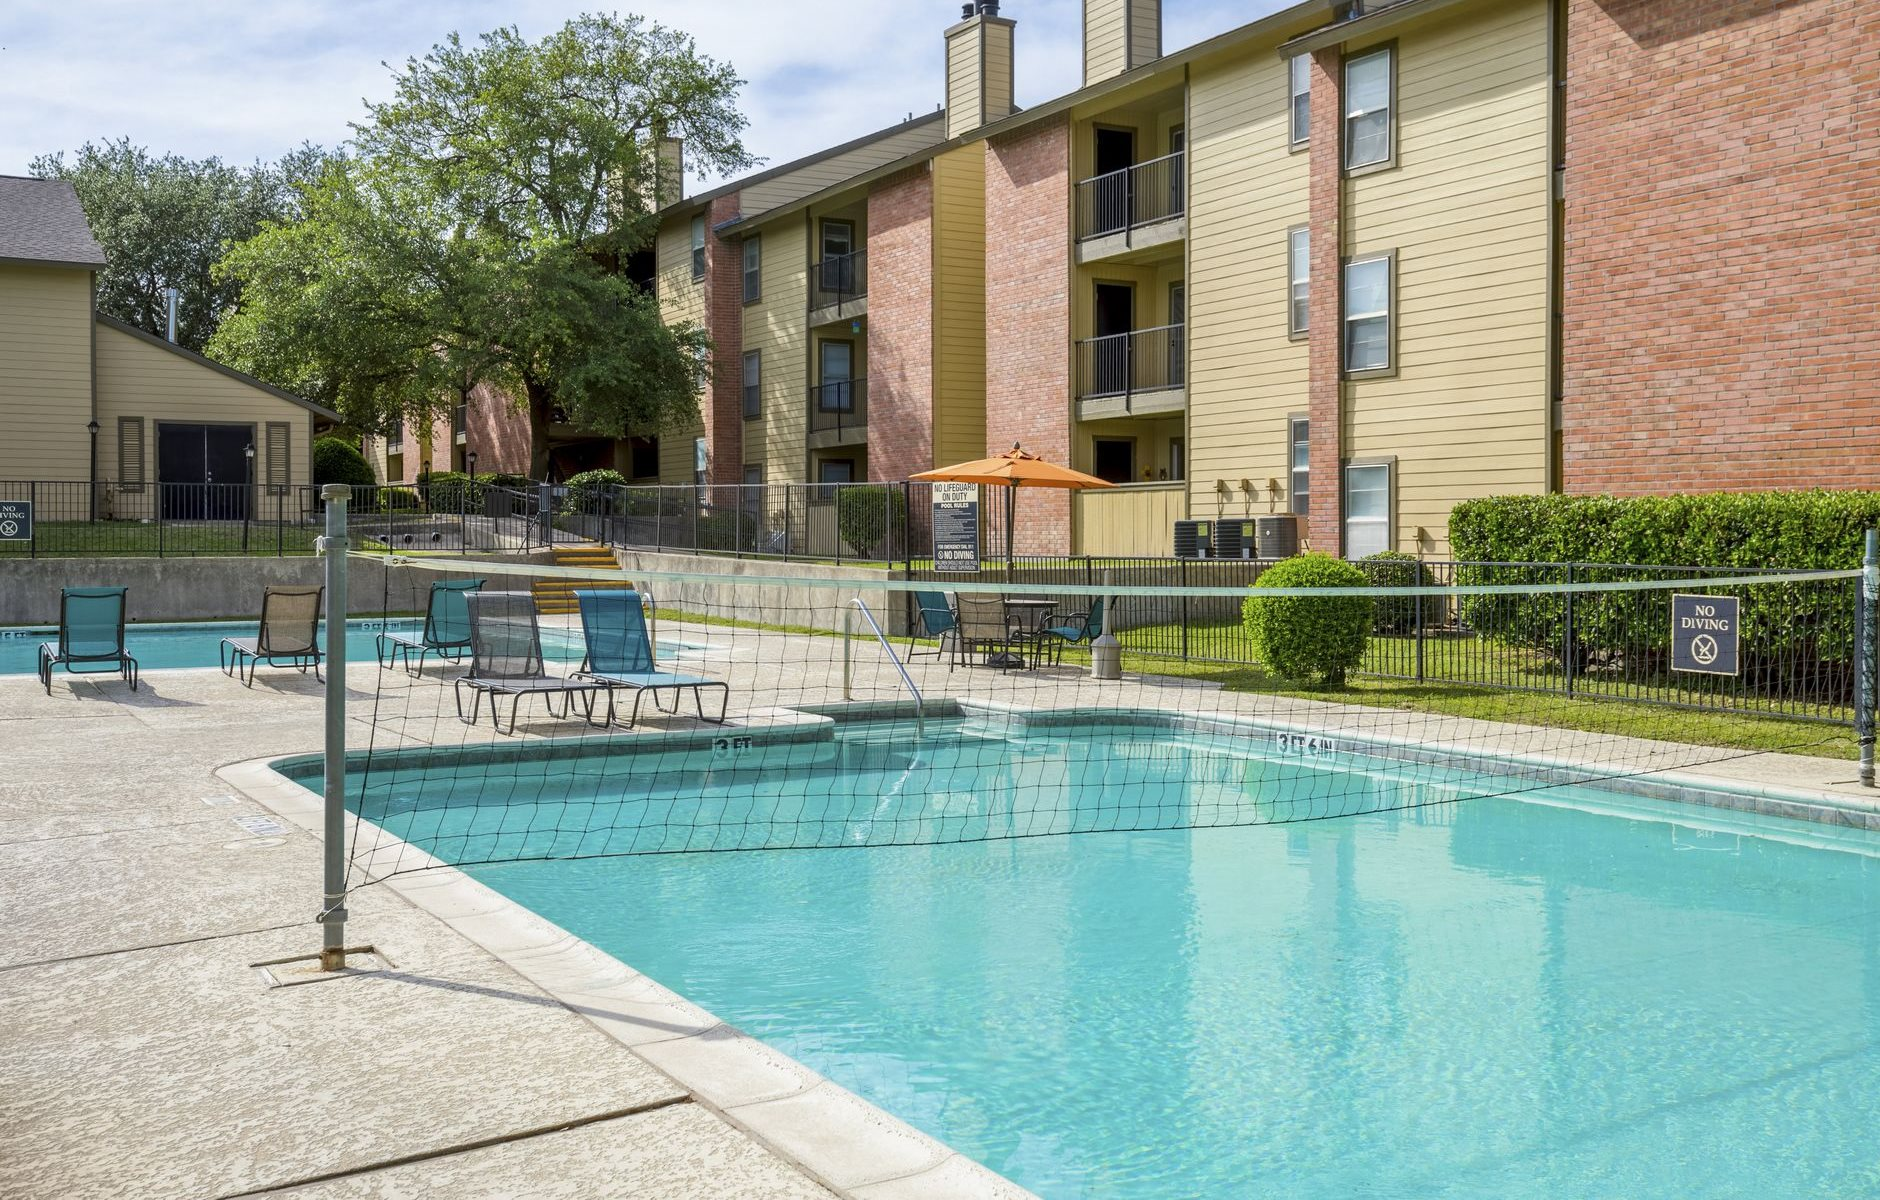 Water Volleyball Pool At Greenbrier Park Apartment Homes In Temple Texas Tx